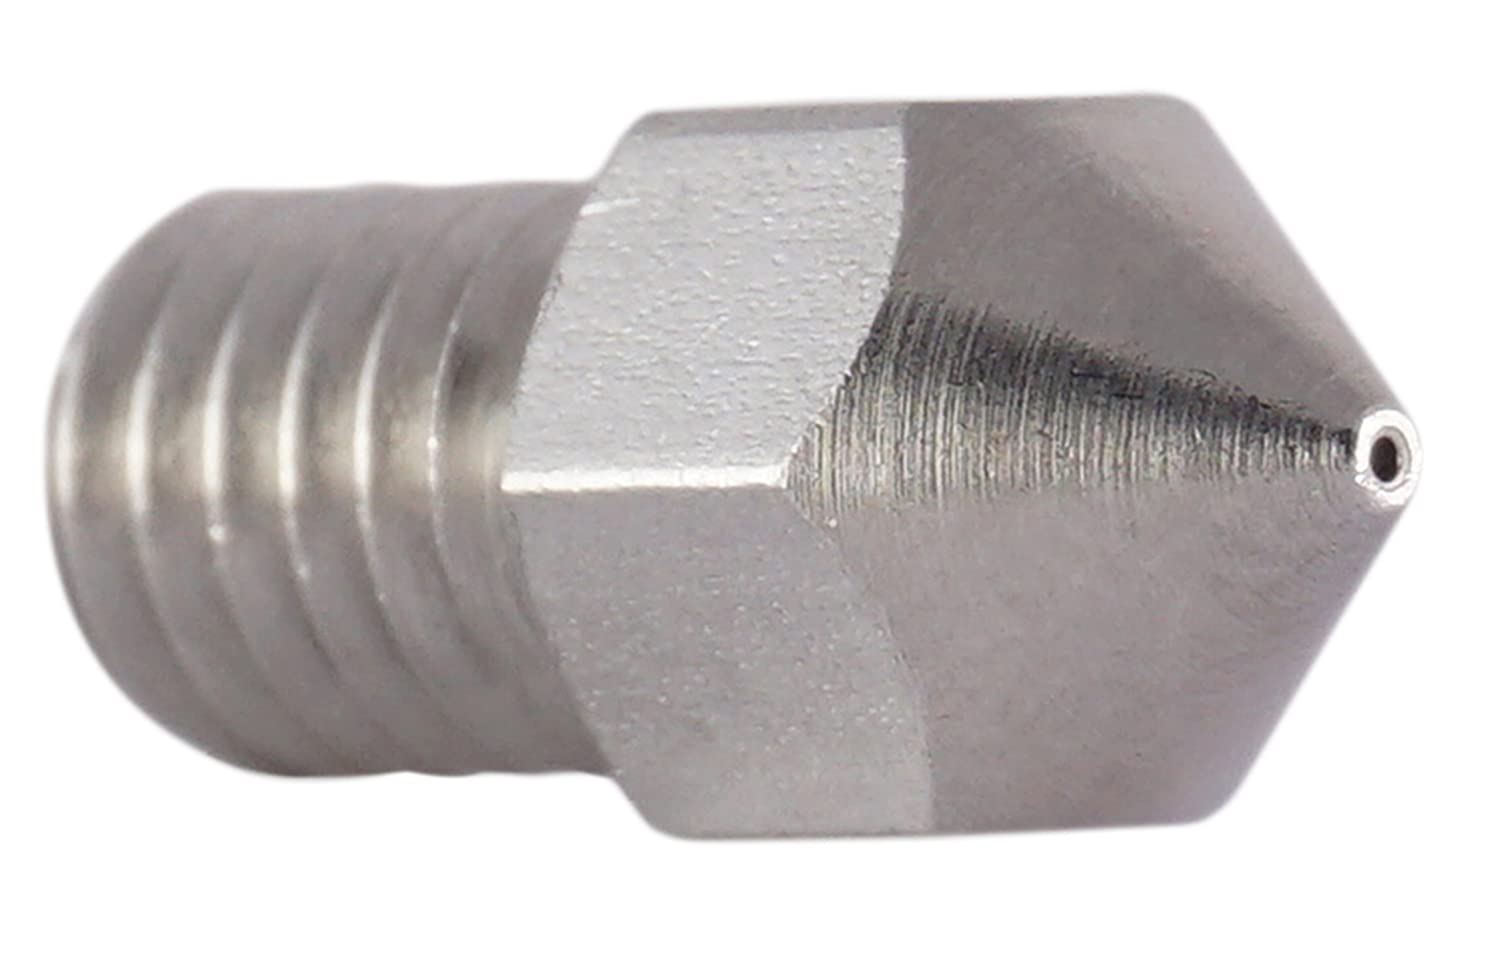 0.4mm precision stainless steel nozzle compatible with MK8 Makerbot RepRap Anet A8//A6 extruder hot end for 1.75mm filament 2 3D FREUNDE 3 pcs 0.3mm